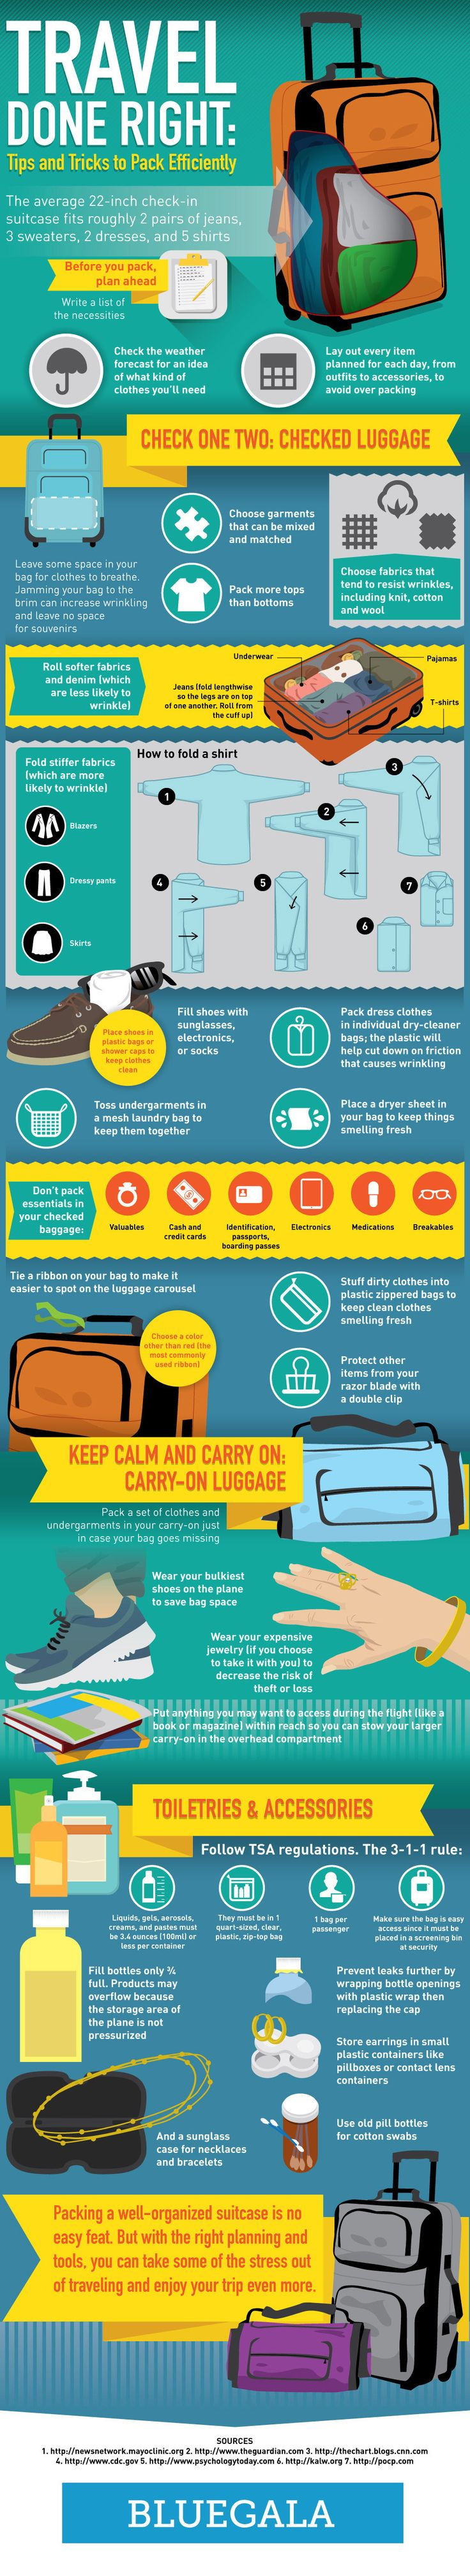 Travel Done Right: How To Properly Pack A Suitcase (Infographic)